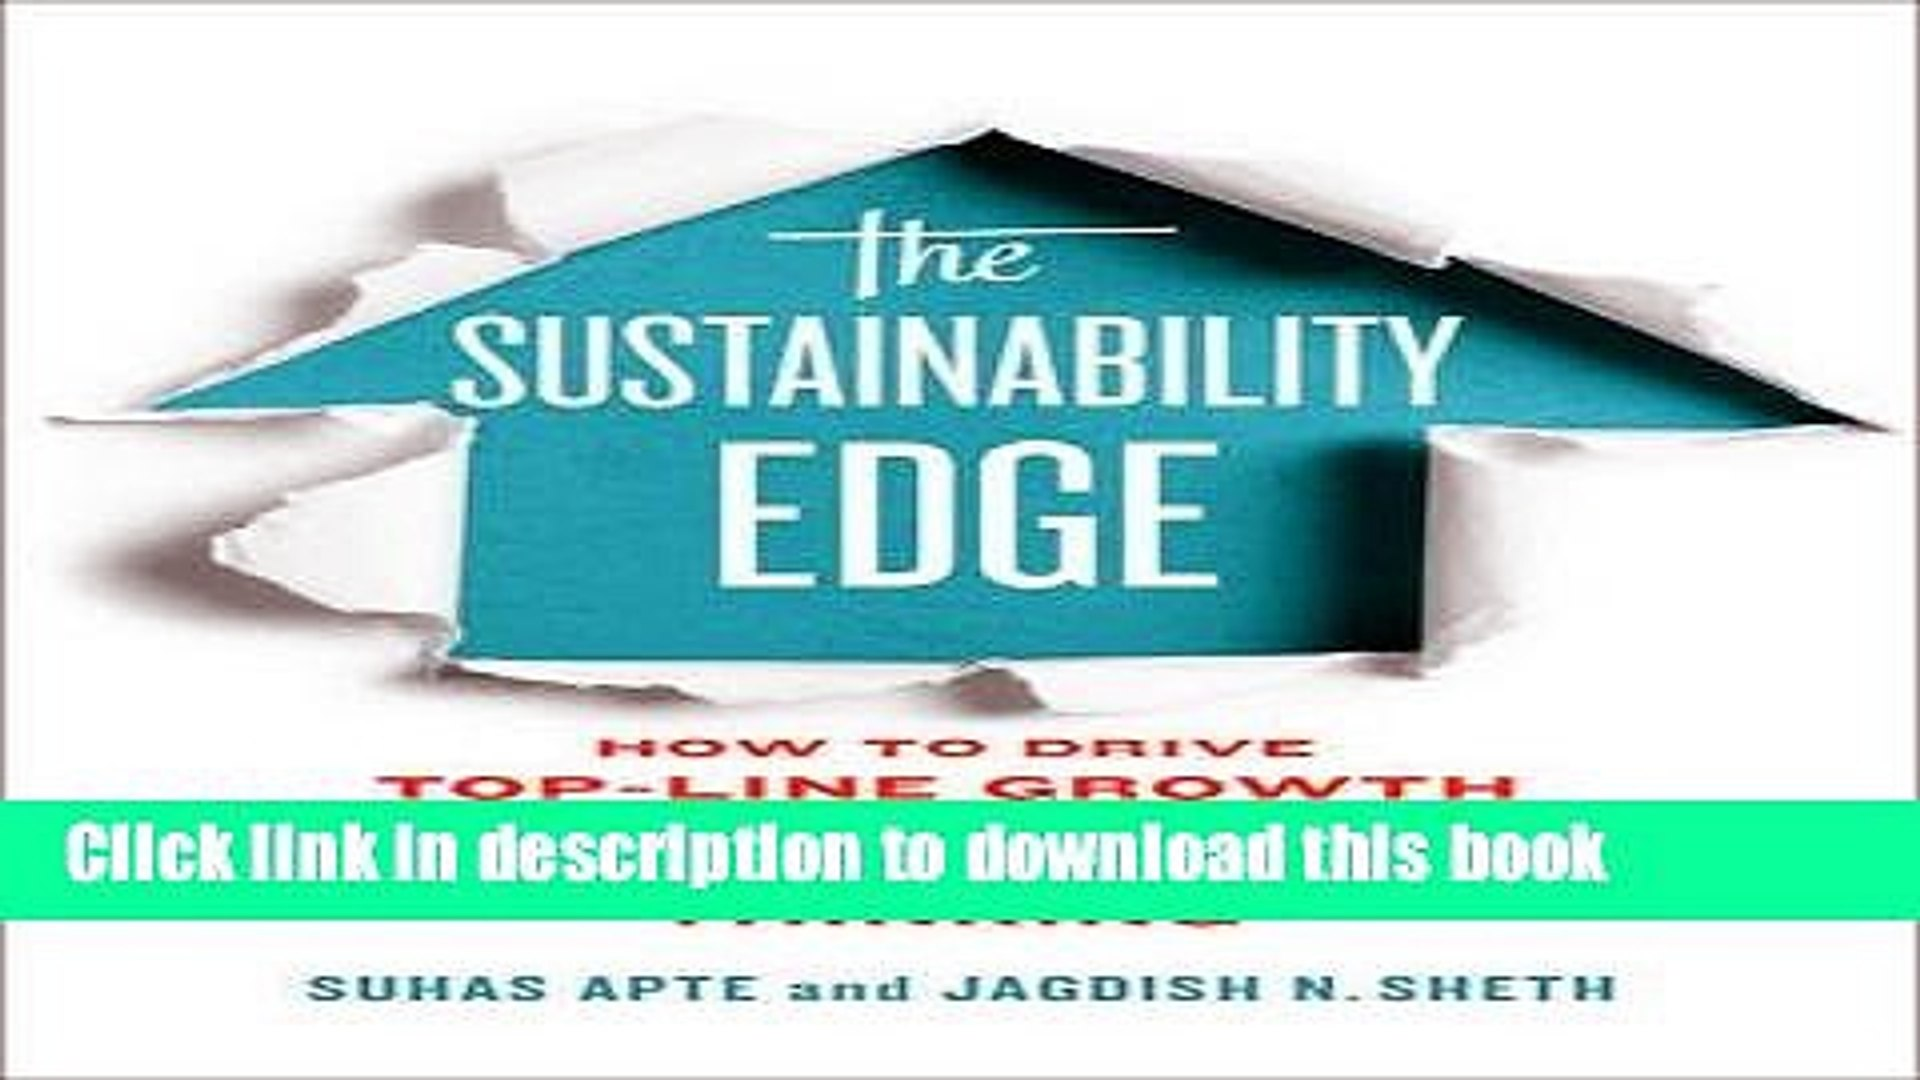 [Popular] The Sustainability Edge: How to Drive Top-Line Growth with Triple-Bottom-Line Thinking